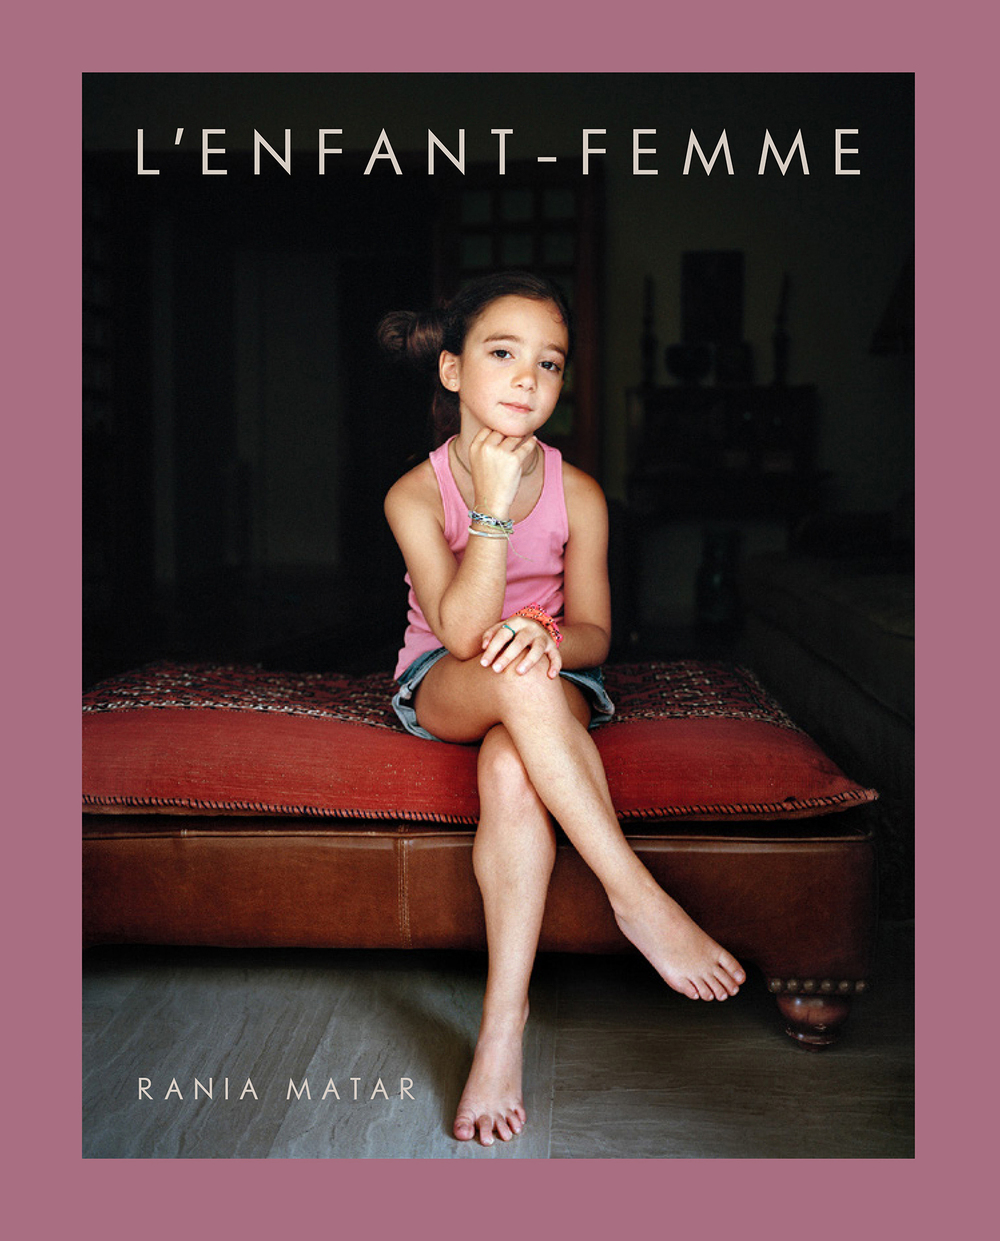 ISBN: 9788862084505 94 Photos 152 Pages Cloth Hard Bound Publisher: Damiani Editore Launch: Paris Photo, November 2015 Market release: March 2016